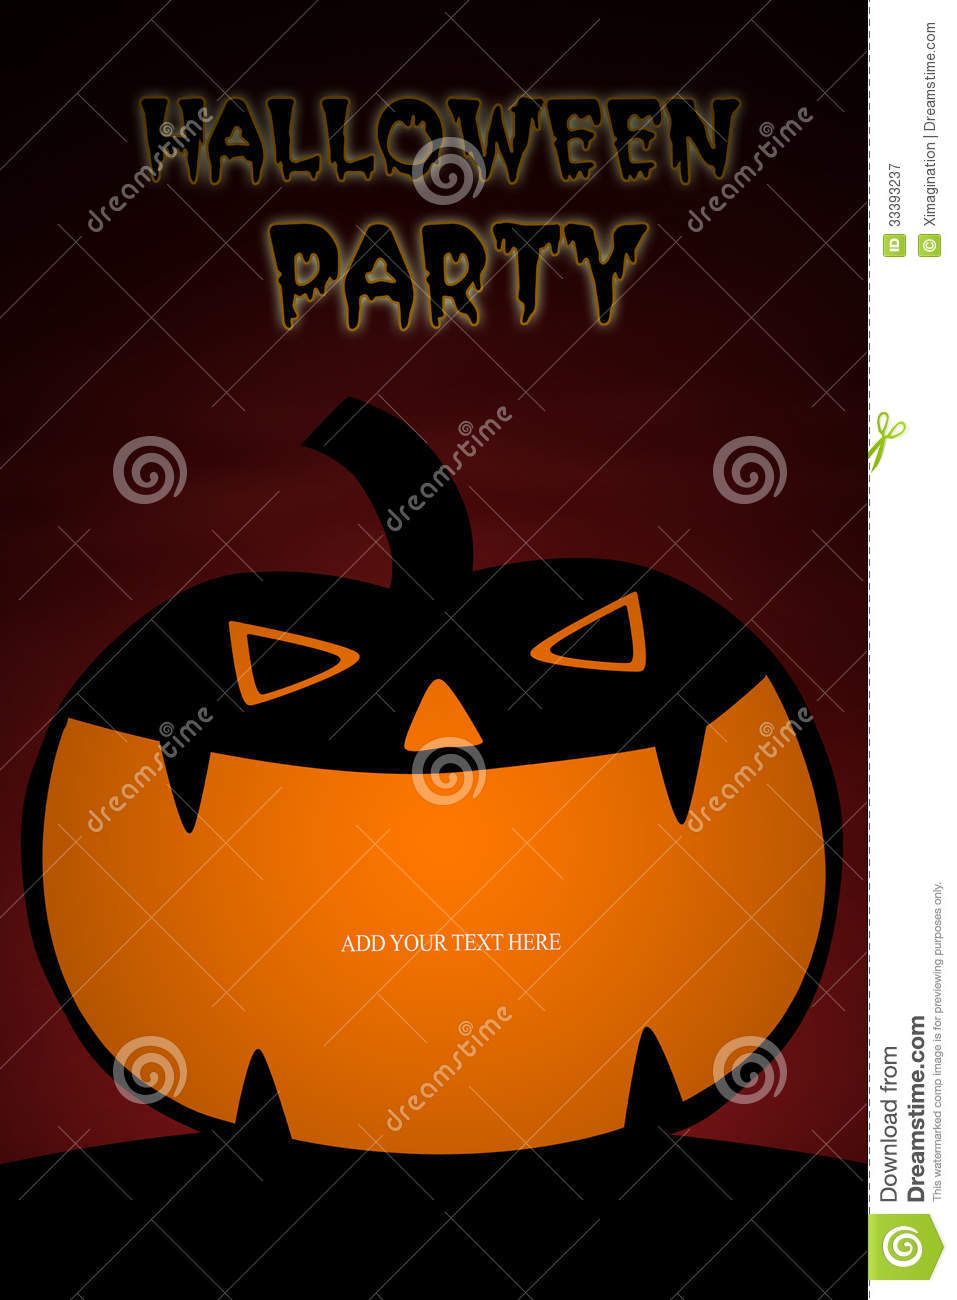 Card Design Of Pumpkin For Halloween Party Royalty Free Stock ...